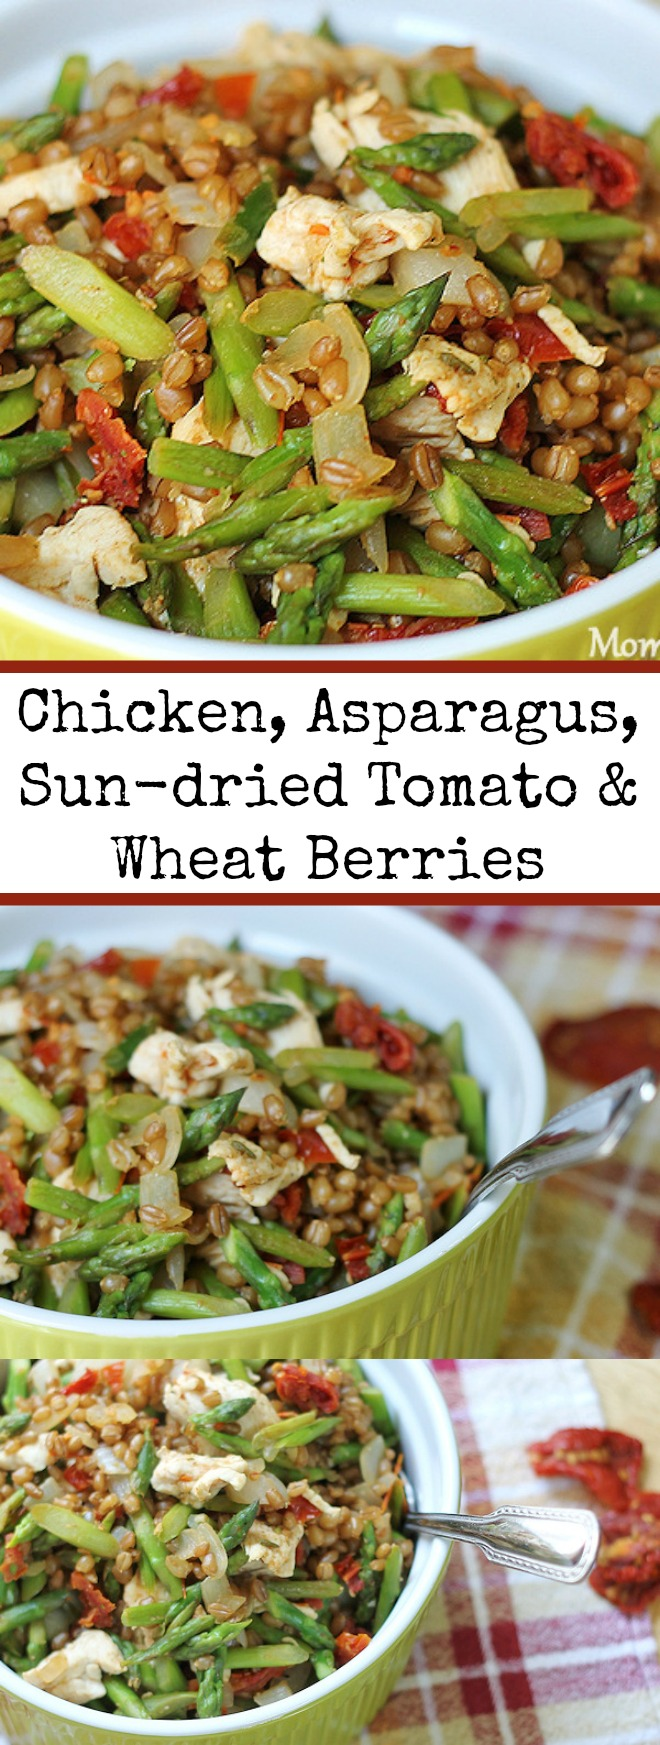 Chicken, Asparagus, Sun-dried Tomato and Wheat Berries